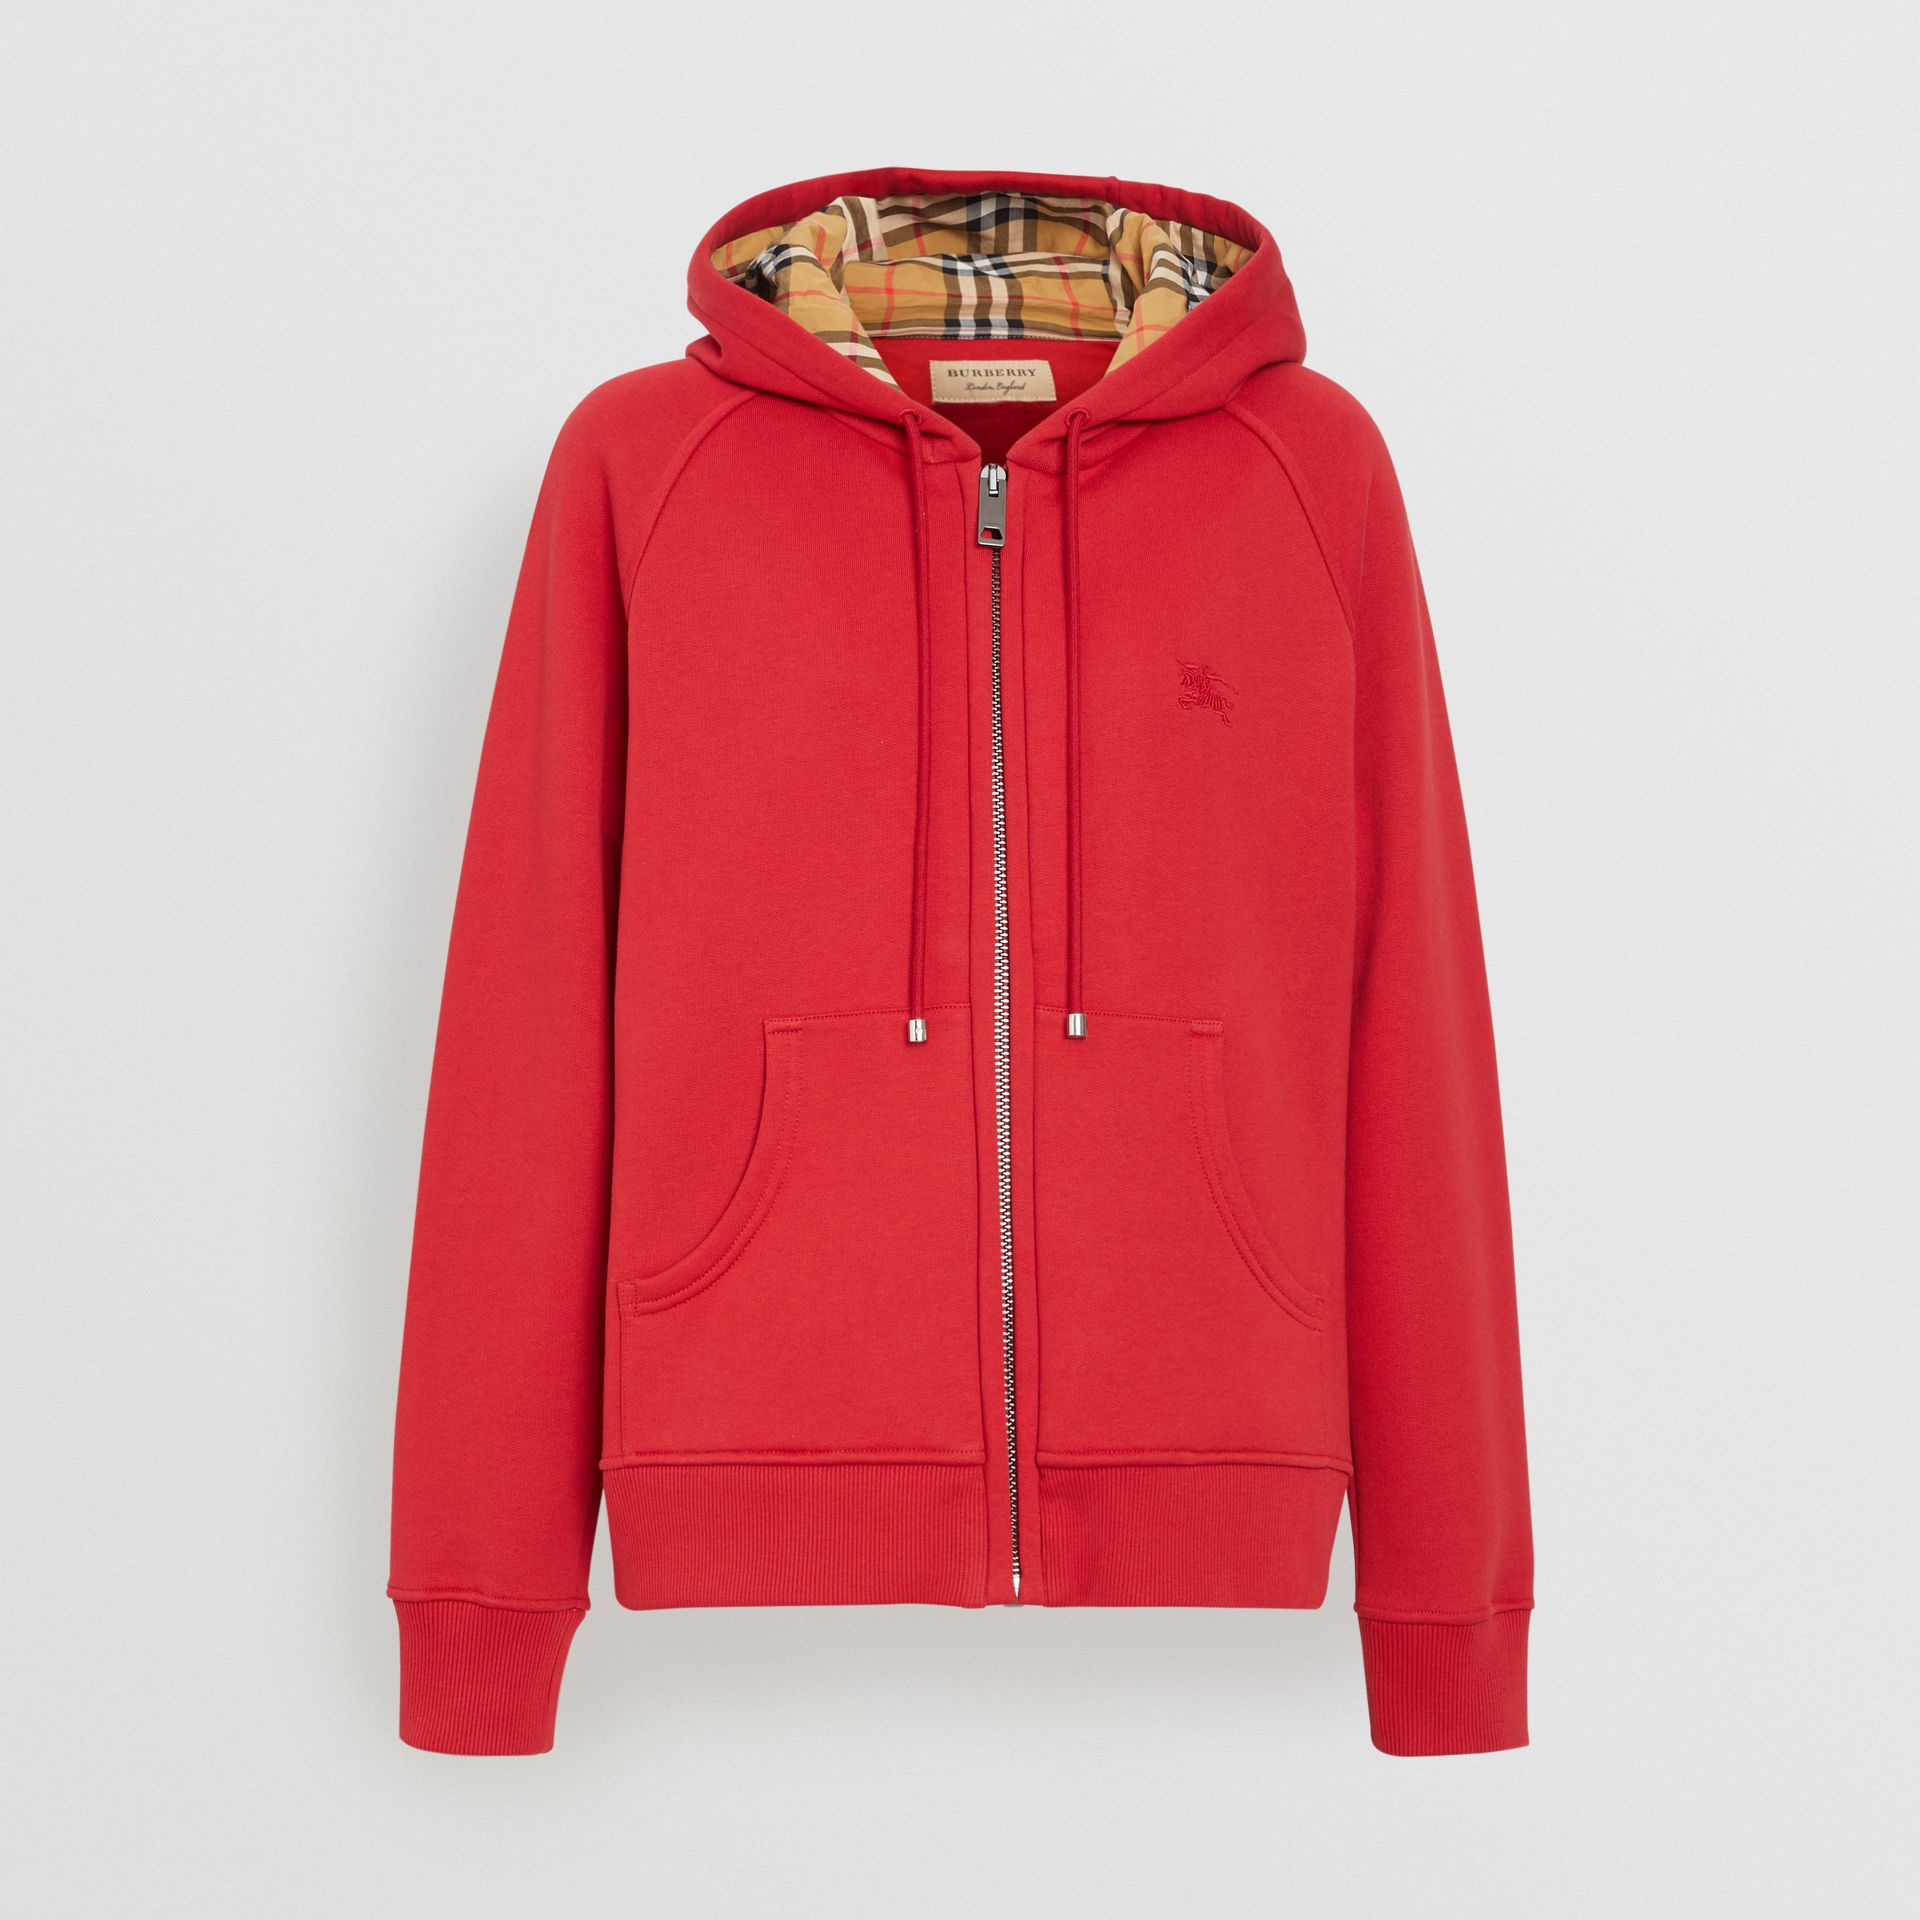 Vintage Check Detail Jersey Hooded Top in Cadmium Red - Women | Burberry United Kingdom - gallery image 3